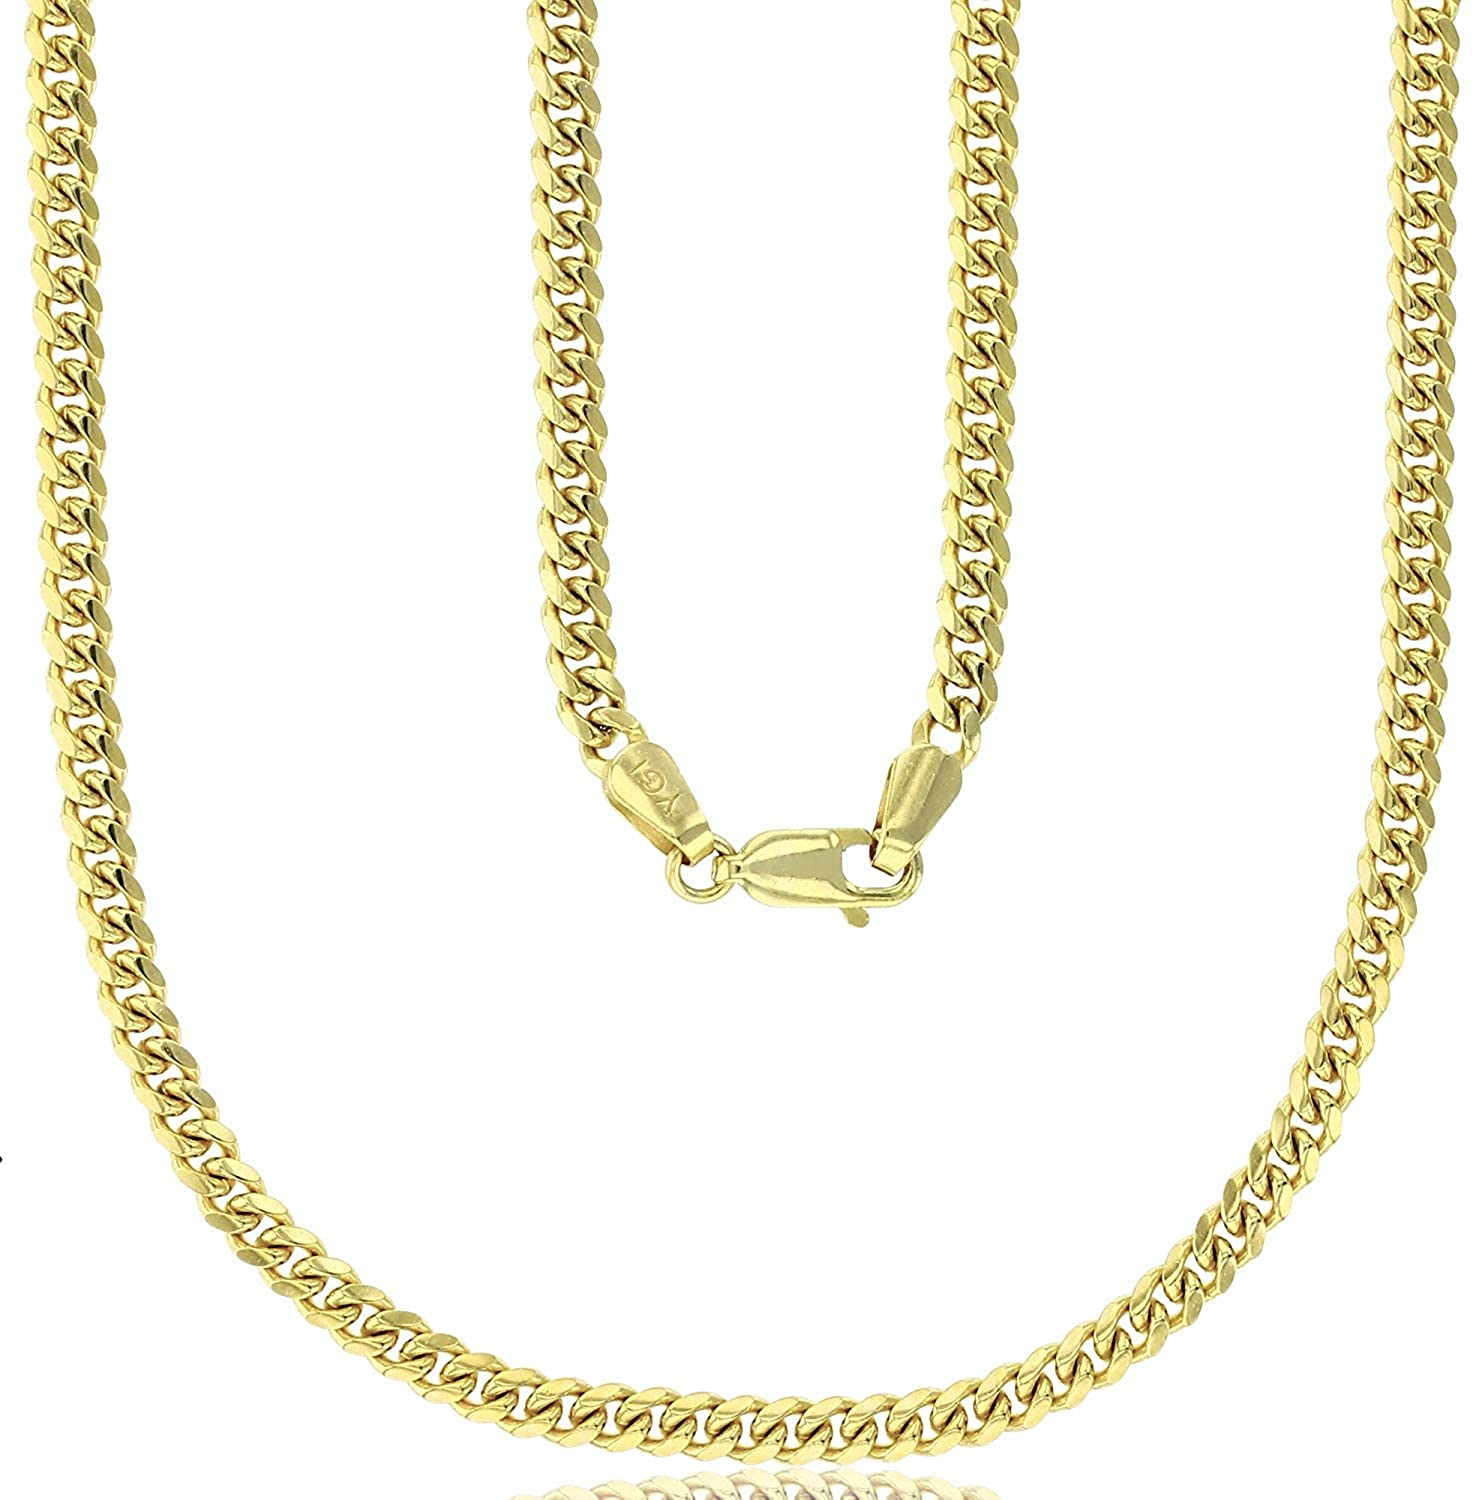 14K Yellow Gold 2mm Solid Maimi Cuban Chain For Men and Women with Lobster lock   14K Italian Gold Chain   Gold Curb Chain For Men and Women